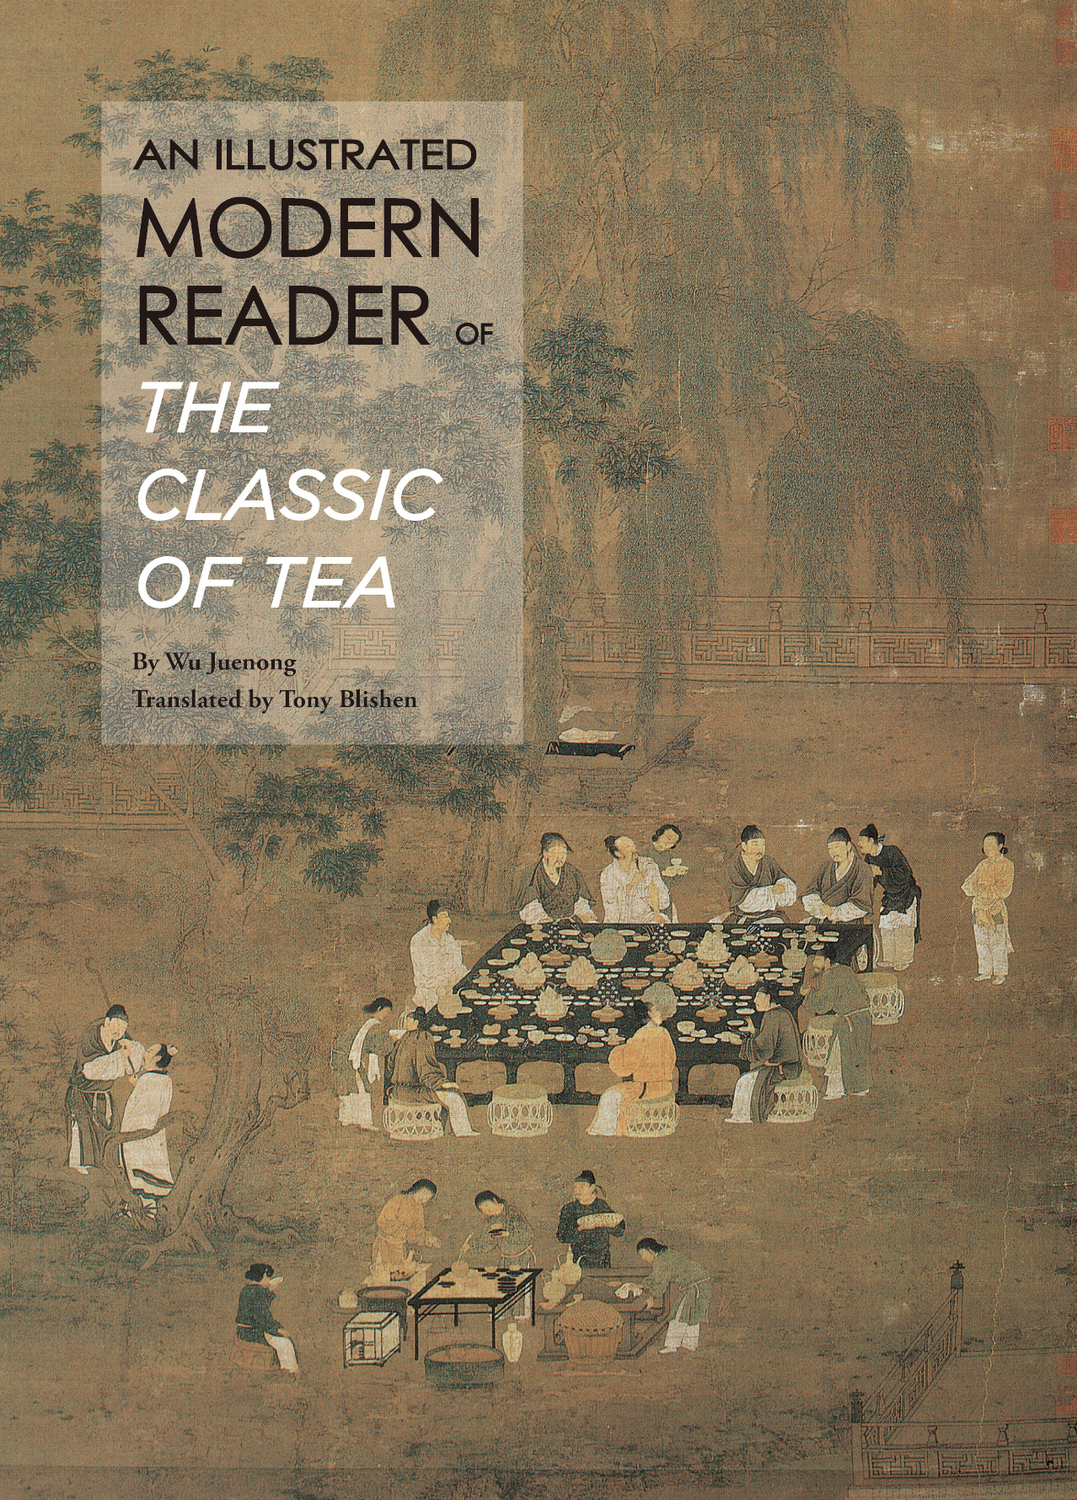 An Illustrated Modern Reader of 'The Classic of Tea'